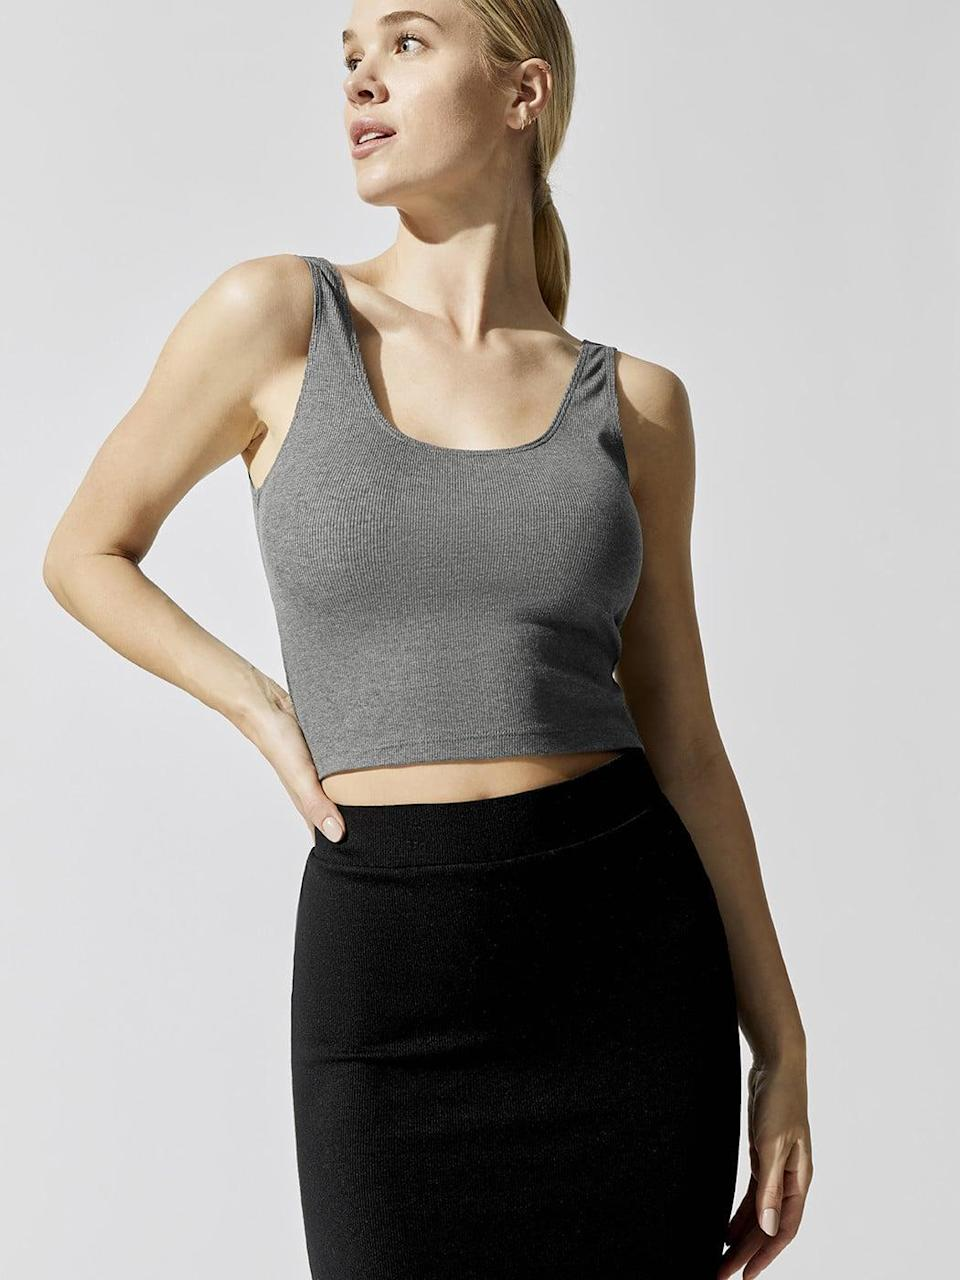 "<p>This cropped <a href=""https://www.popsugar.com/buy/Carbon-38-Scoop-Back-Ribbed-Tank-Top-578940?p_name=Carbon%2038%20Scoop%20Back%20Ribbed%20Tank%20Top&retailer=carbon38.com&pid=578940&price=48&evar1=fit%3Aus&evar9=47585636&evar98=https%3A%2F%2Fwww.popsugar.com%2Ffitness%2Fphoto-gallery%2F47585636%2Fimage%2F47585648%2FCarbon-38-Scoop-Back-Ribbed-Tank-Top&list1=shopping%2Cworkout%20clothes%2Csale%2Csale%20shopping&prop13=api&pdata=1"" class=""link rapid-noclick-resp"" rel=""nofollow noopener"" target=""_blank"" data-ylk=""slk:Carbon 38 Scoop Back Ribbed Tank Top"">Carbon 38 Scoop Back Ribbed Tank Top</a> ($48, originally $68) is a workout wardrobe basic.</p>"